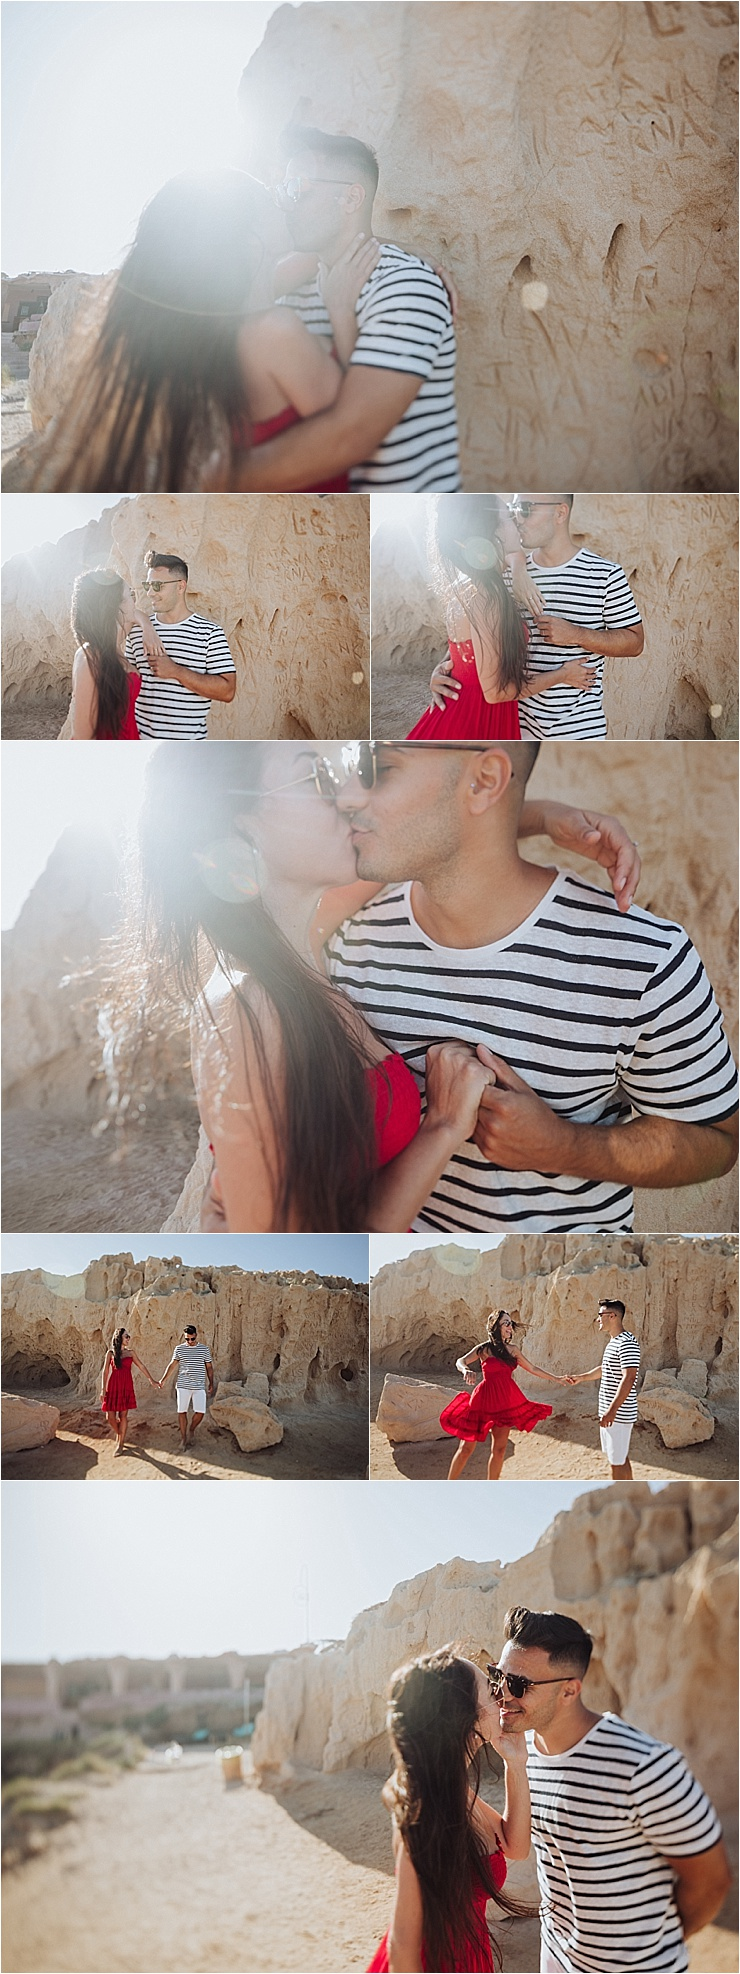 The newly engaged couple dance and kiss on the beach in Ibiza for their sunrise beach engagement session at Cala Comte beach by Wild Connections Photography